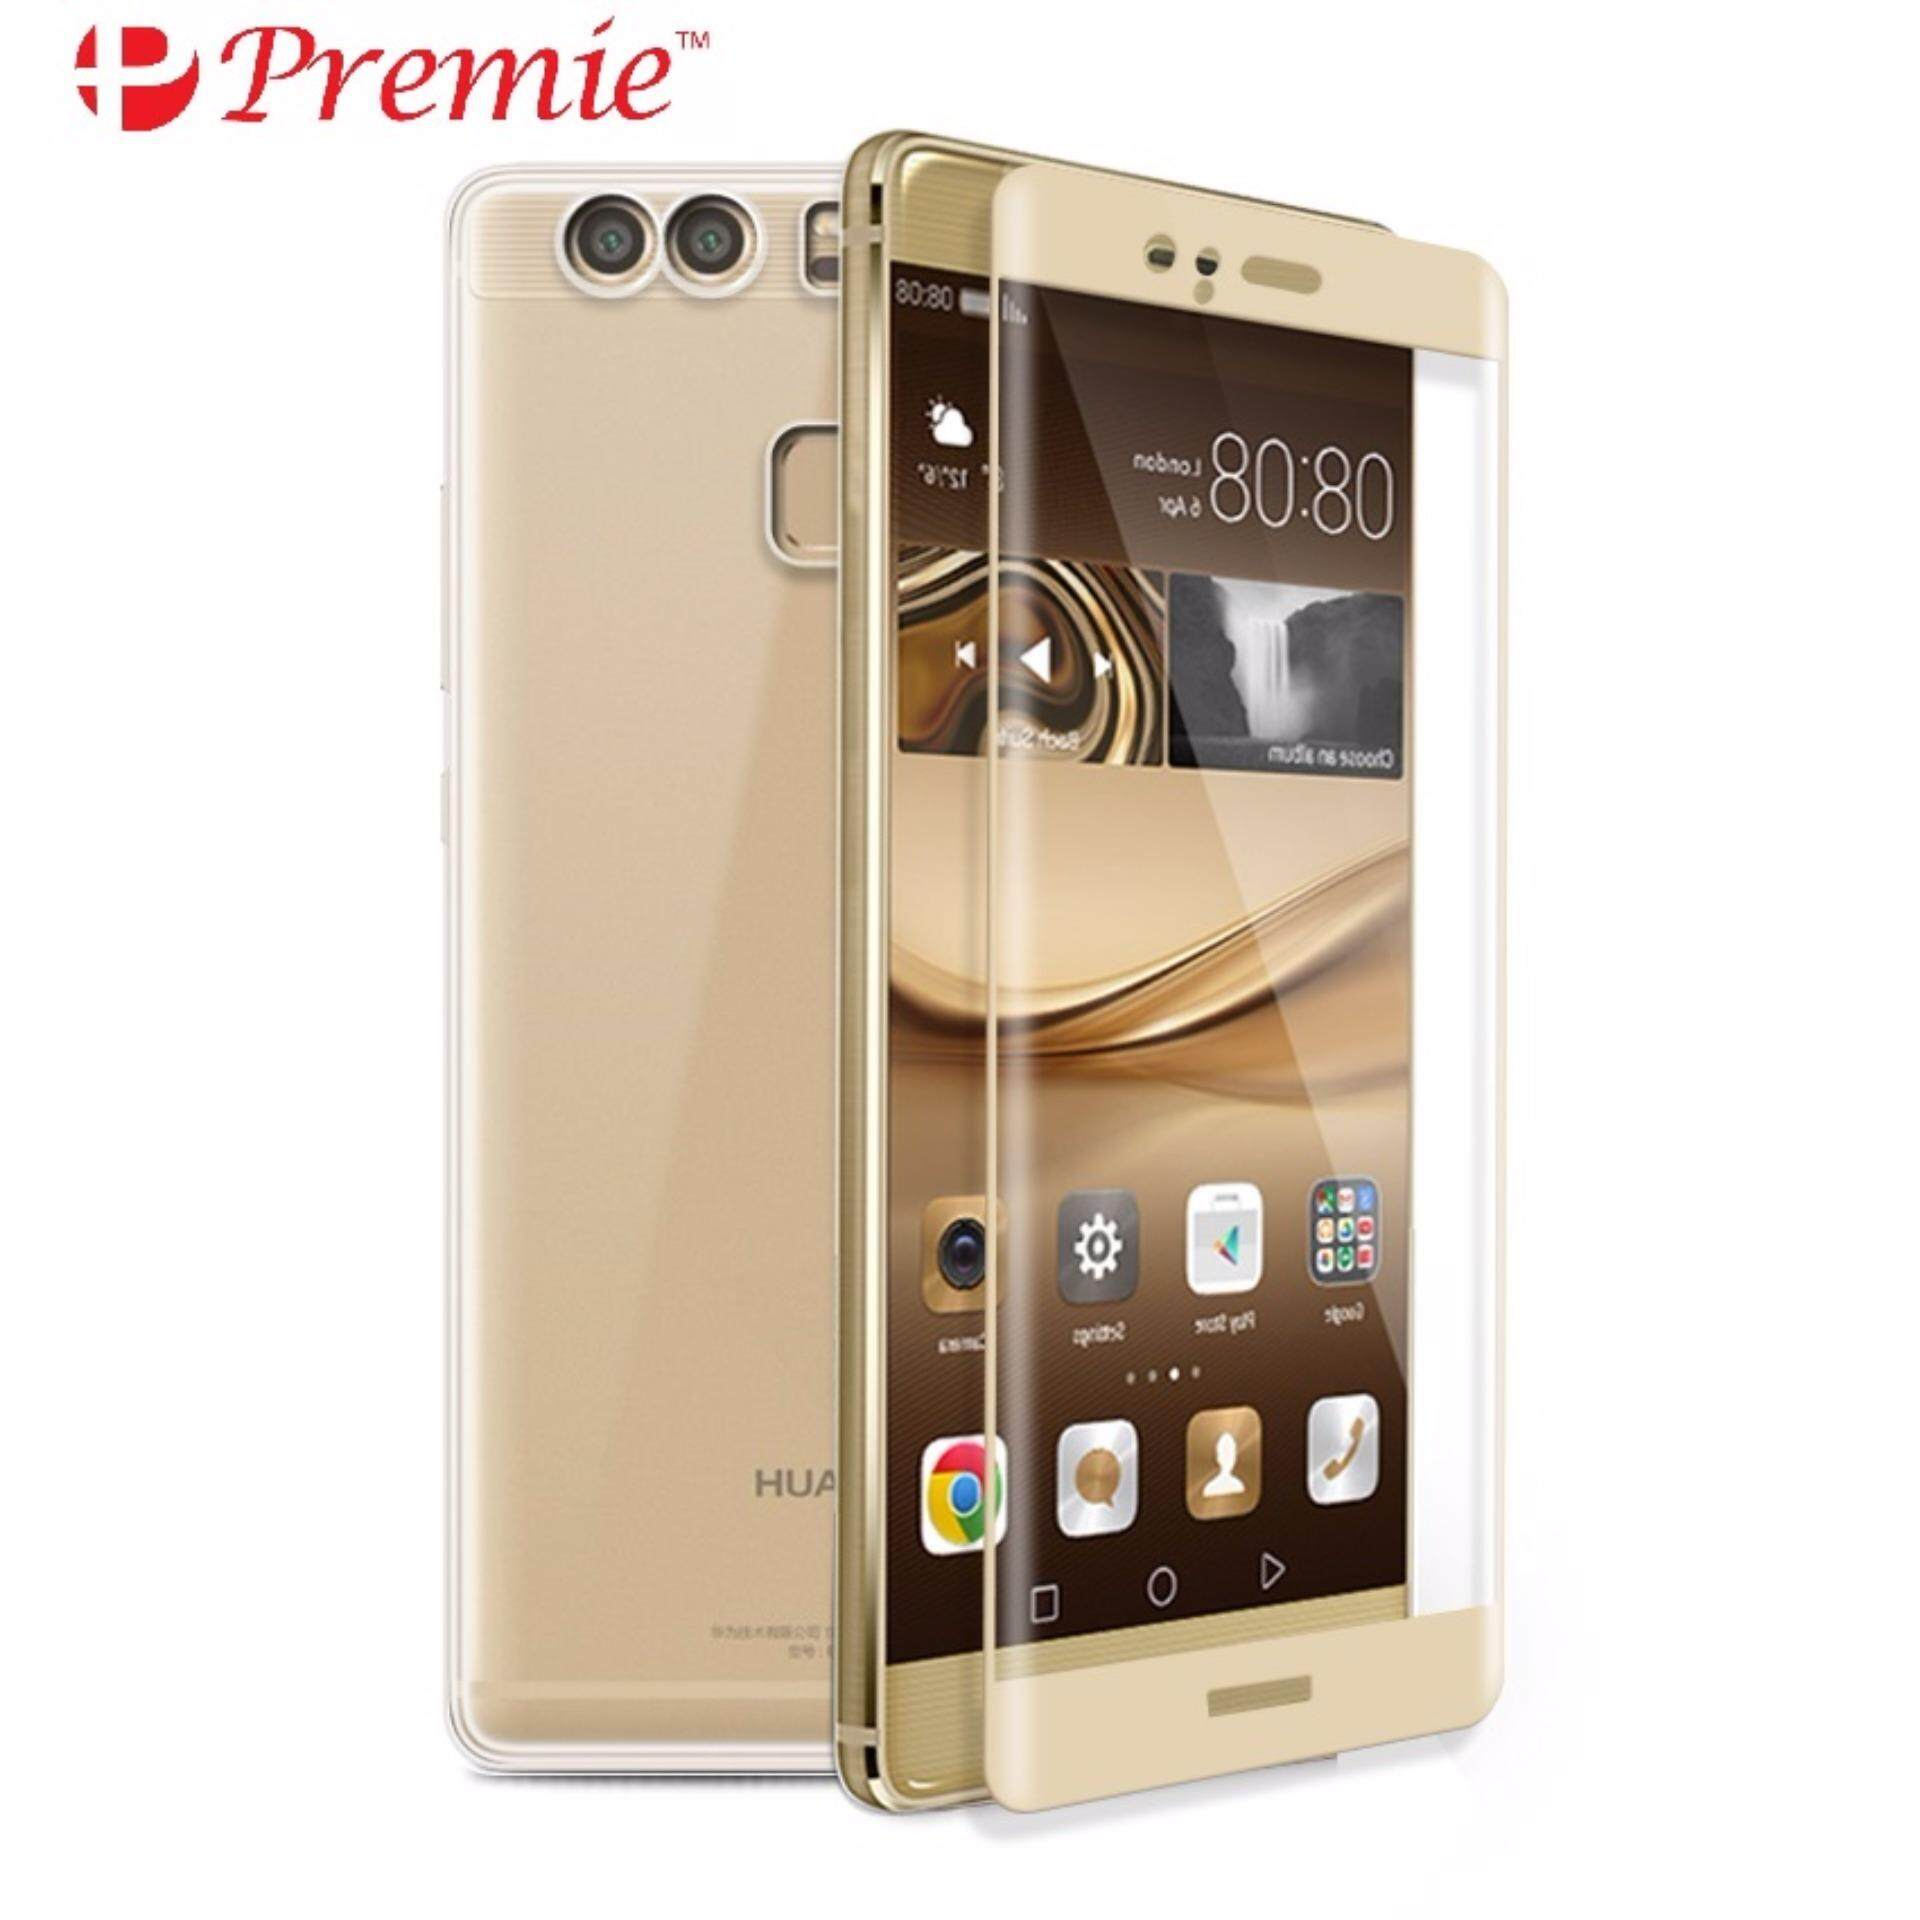 PREMIE Huawei P10 Full Cover Curved Tempered Glass Screen Protector Gold